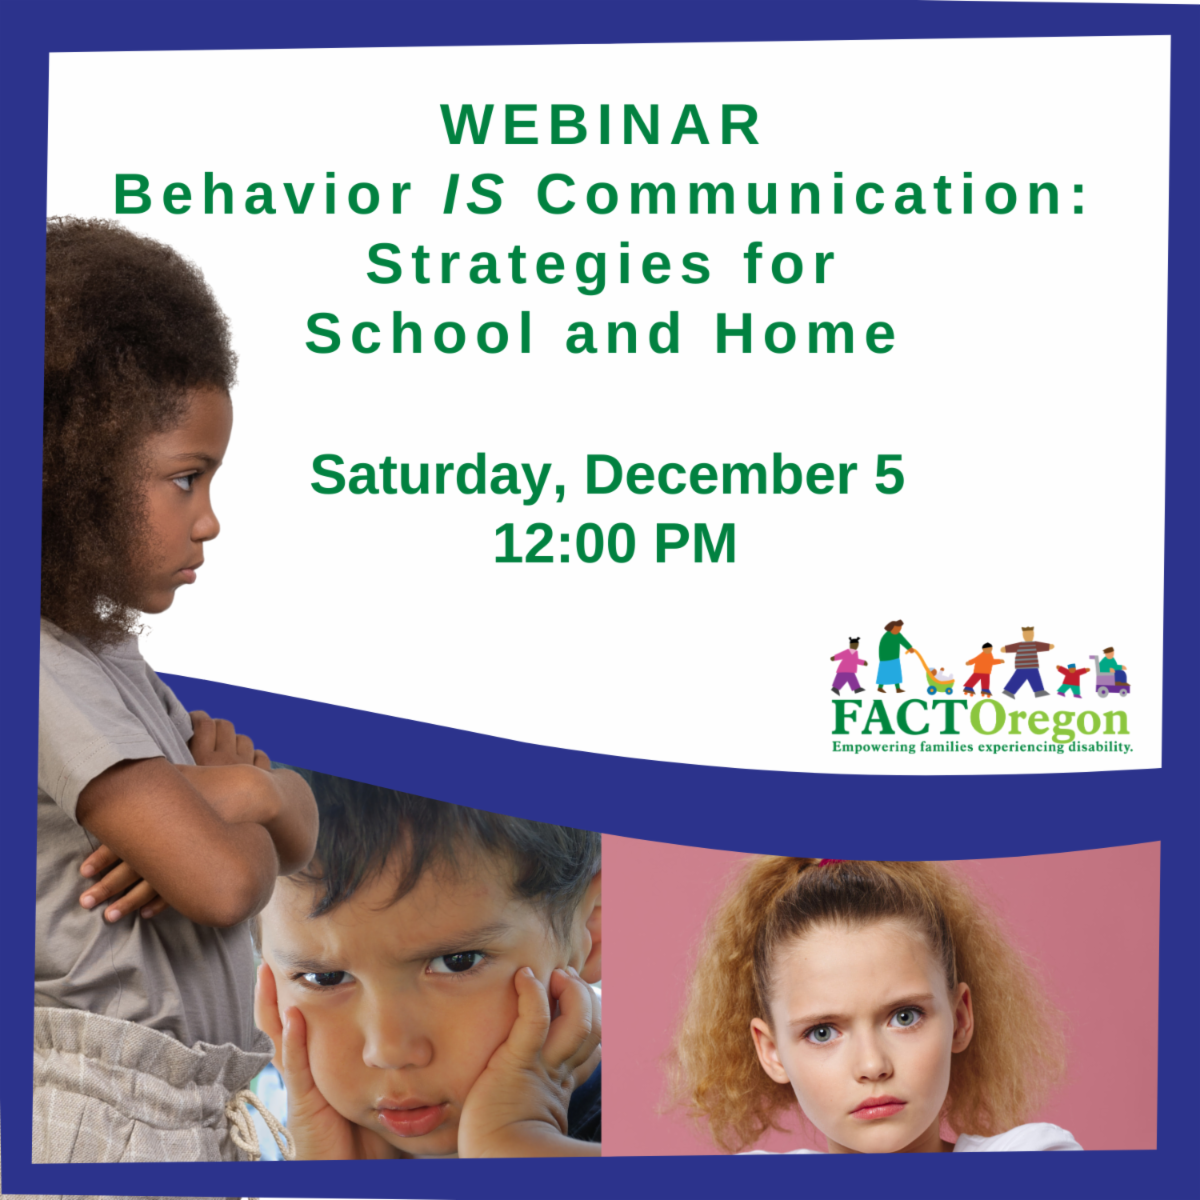 Webinar titled Behavior IS Communication: Strategies for School and Home. Saturday December 5 at 12 noon. A girl with curly dark hair frowns and crosses arms. A boy looks at camera with hands on his face. A girl stares ahead against a pink background.